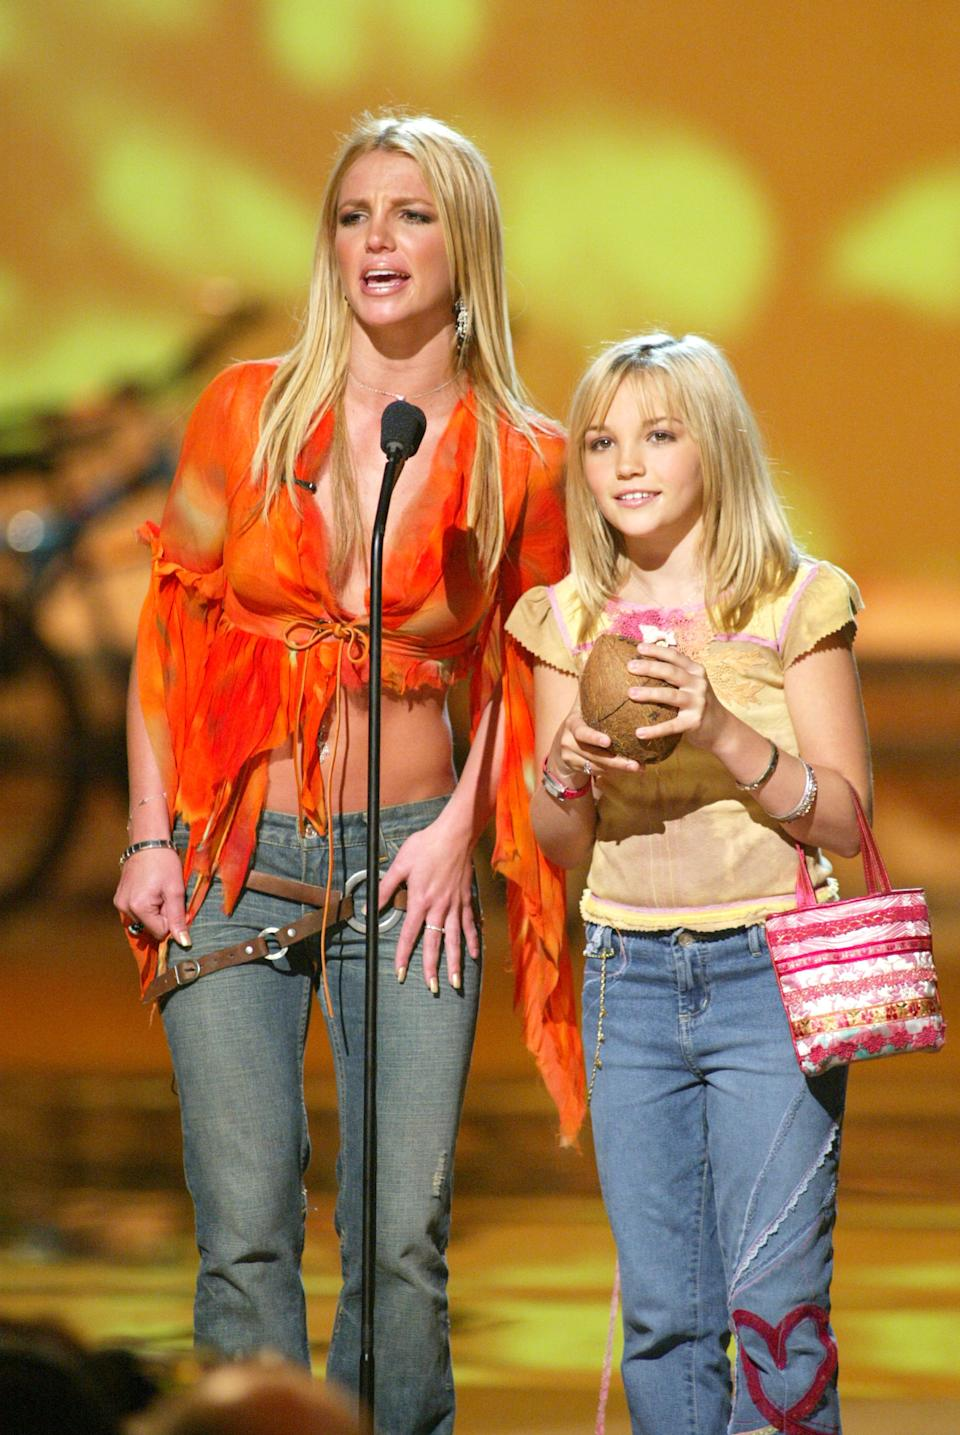 Britney Spears and her sister Jamie Lynn Spears at The Teen Choice Awards, held at the Universal Amphitheatre in Los Angeles, California, August 4, 2002. (Photo by Kevin Winter/Getty Images)